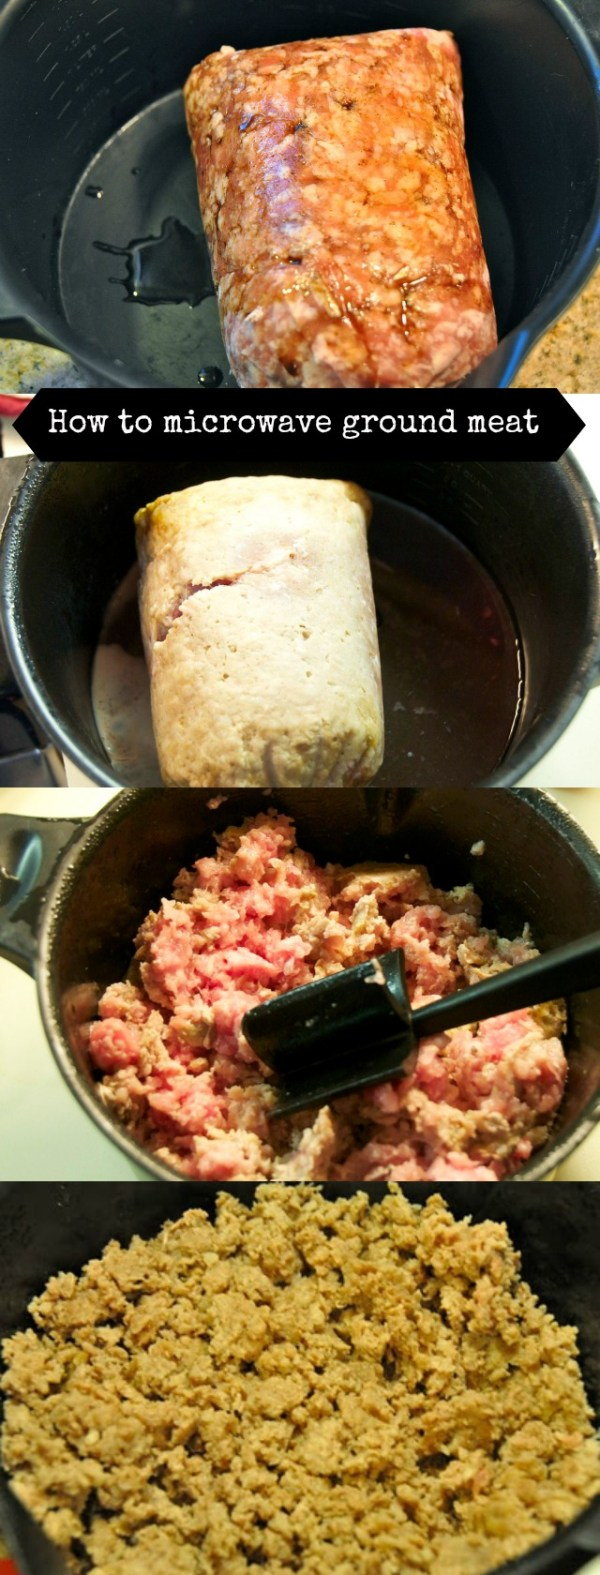 how to microwave meat